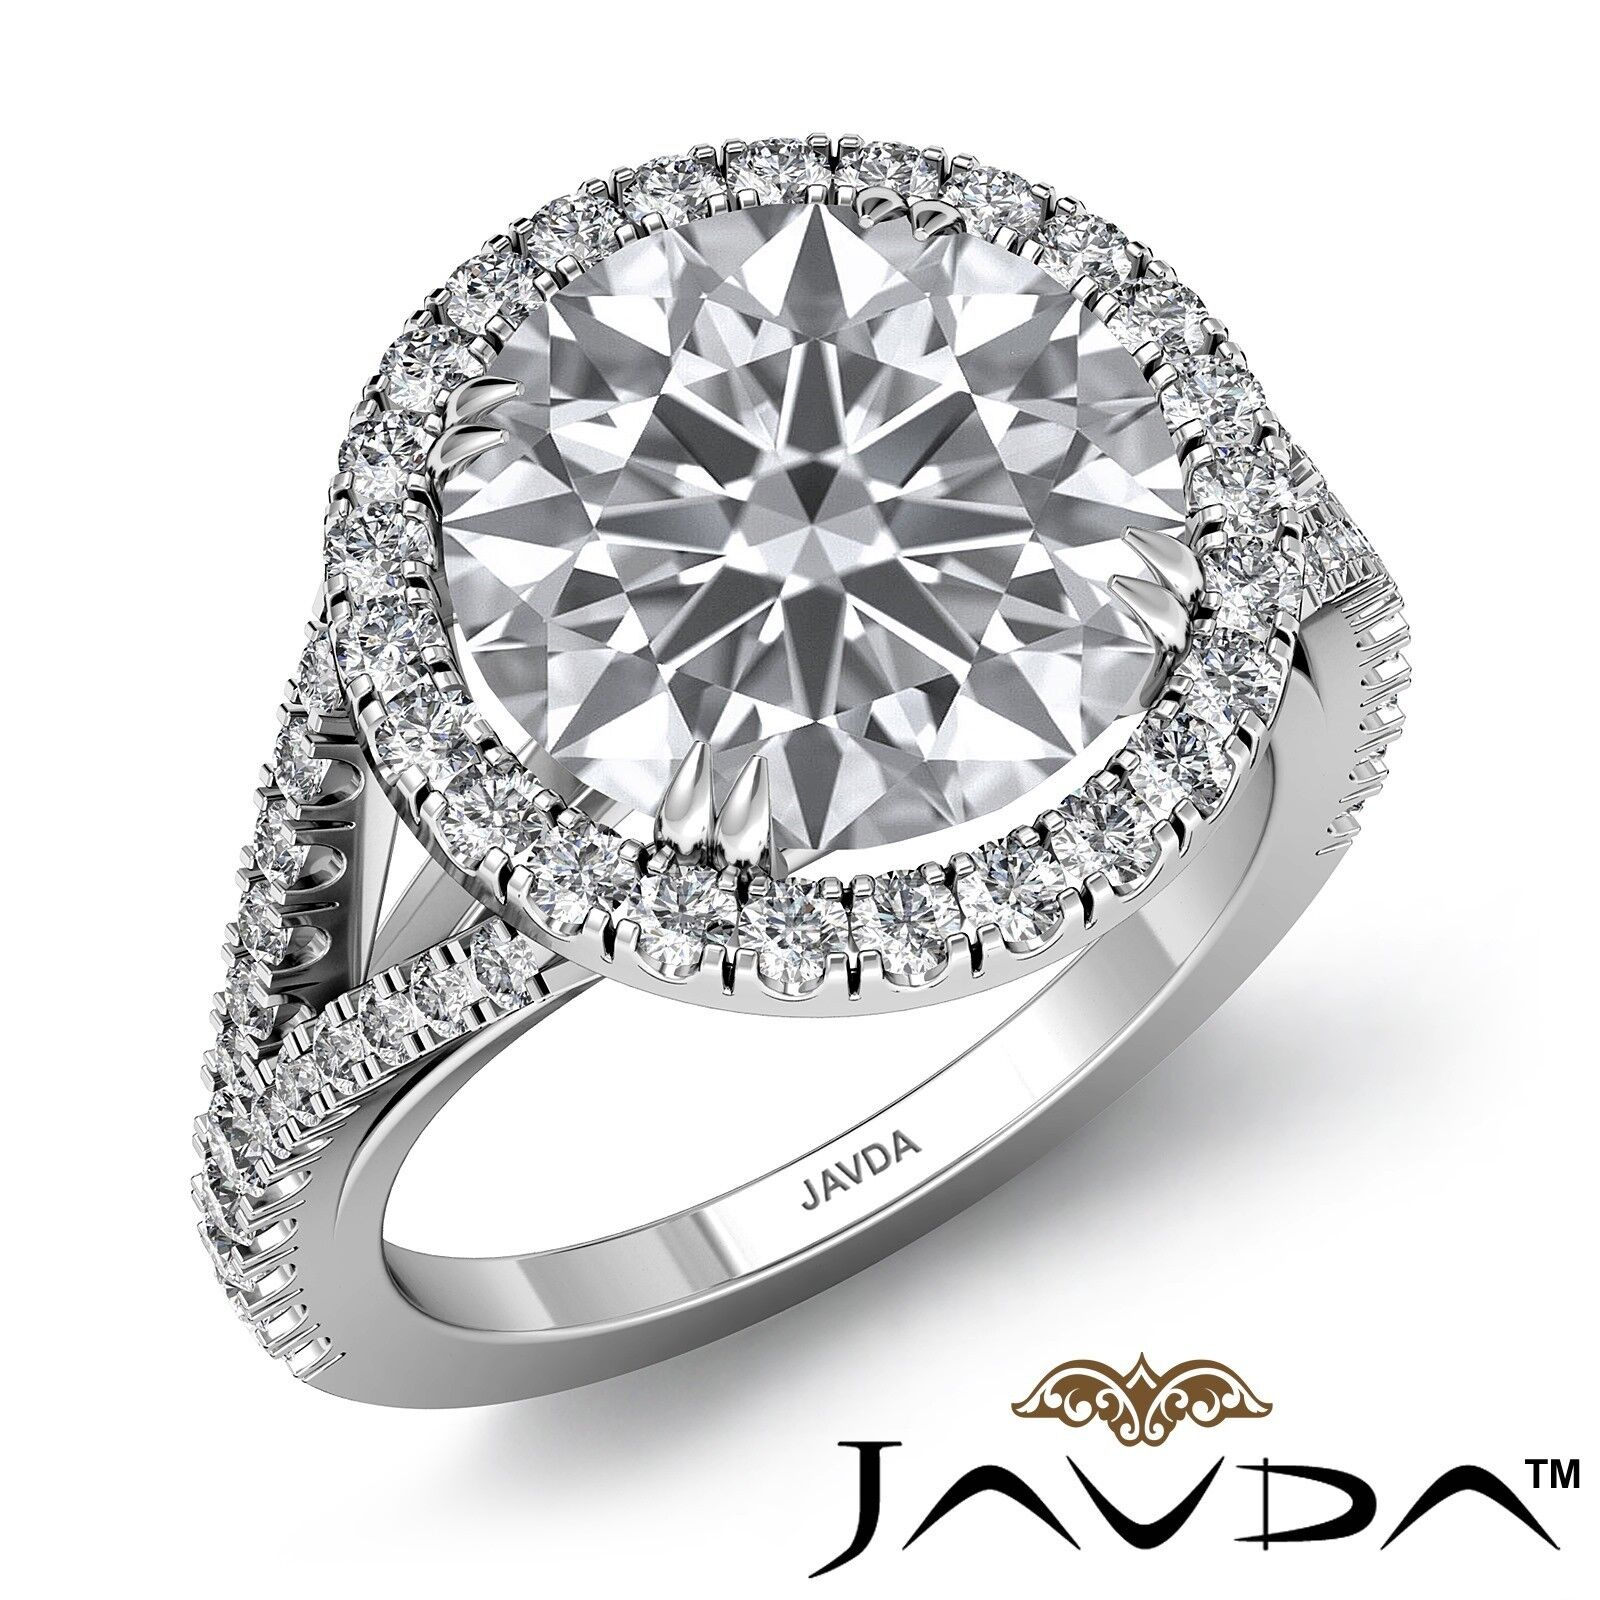 4.34ctw High Quality Round Diamond Engagement Ring GIA K-VS1 Platinum Women New